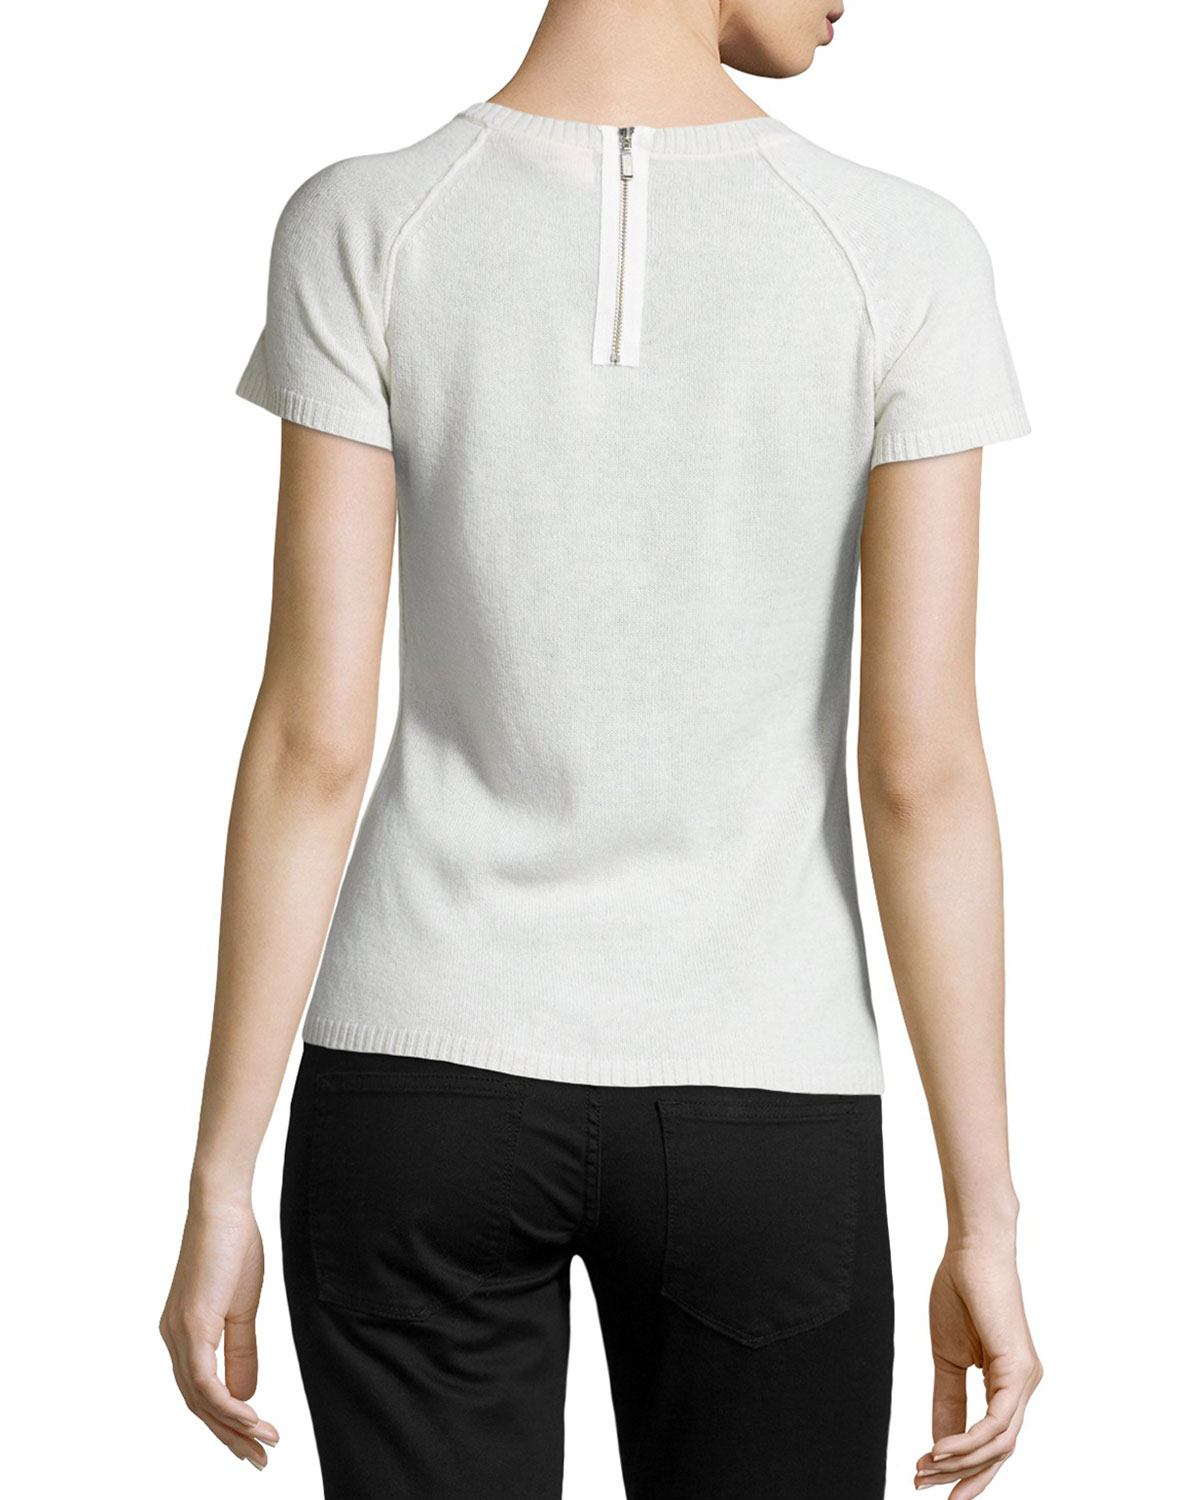 White Short Sleeve Cashmere Sweater - Cashmere Sweater England